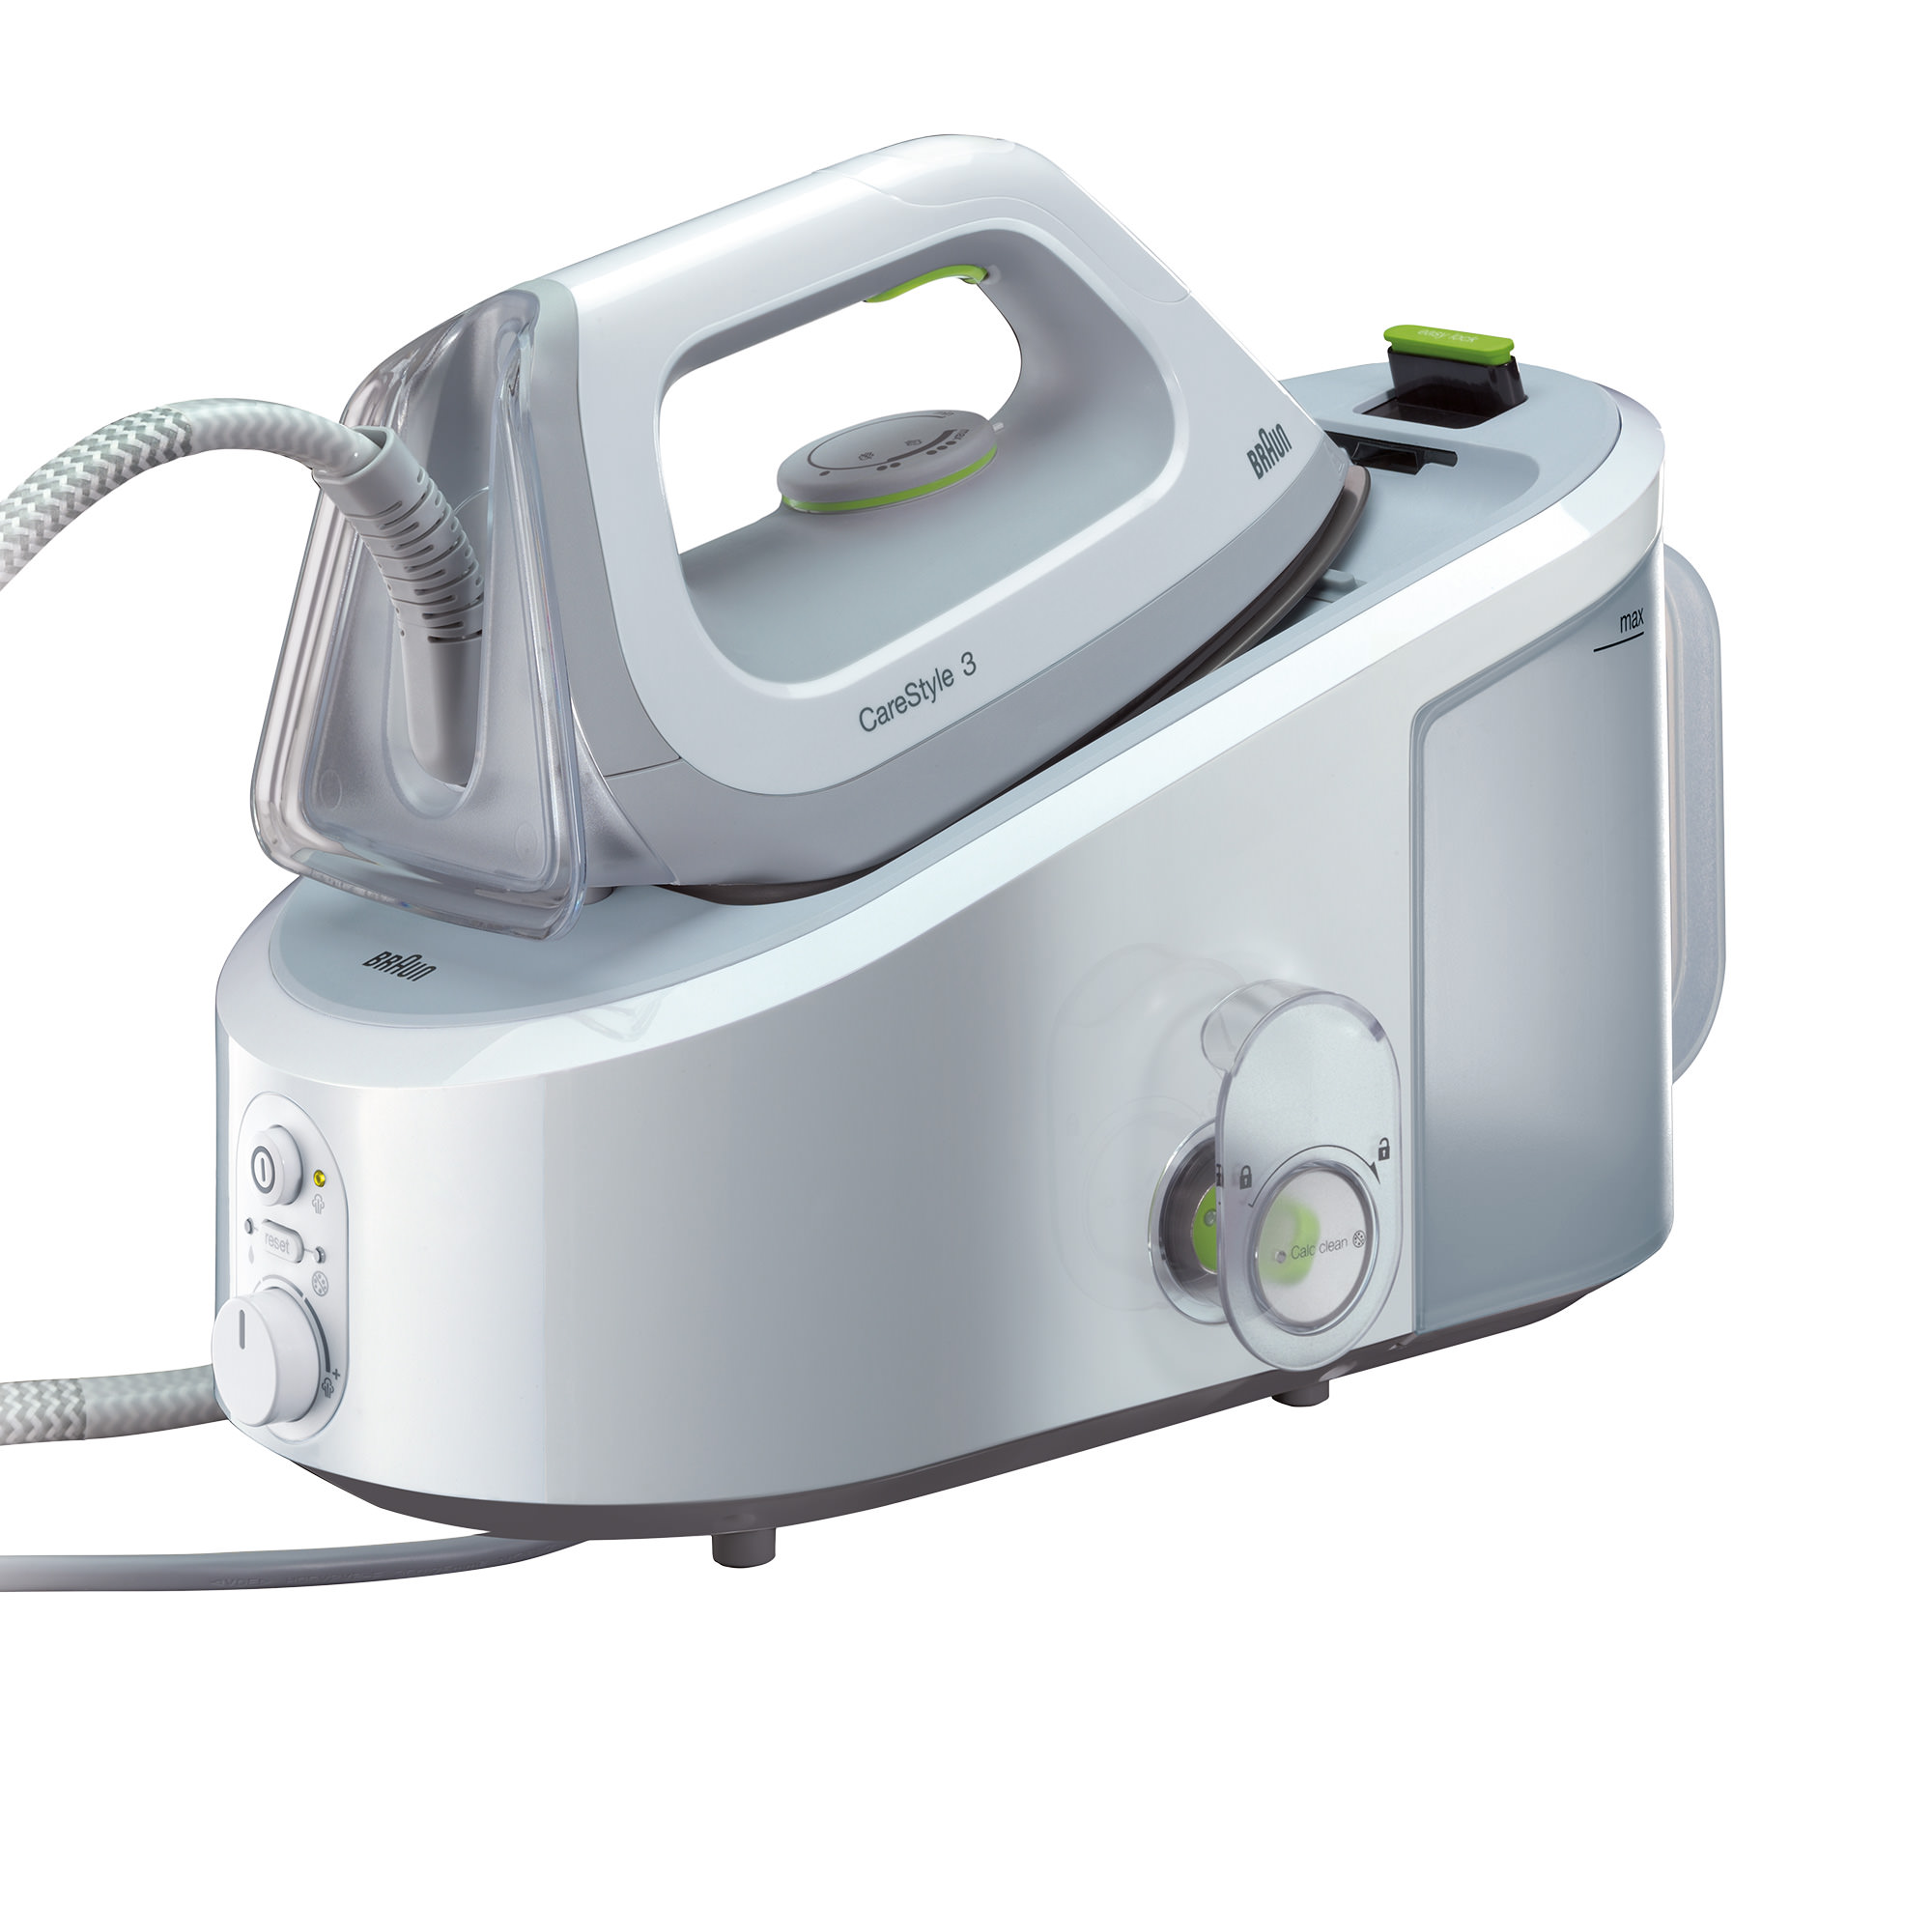 Braun CareStyle 3 Steam Station Silver